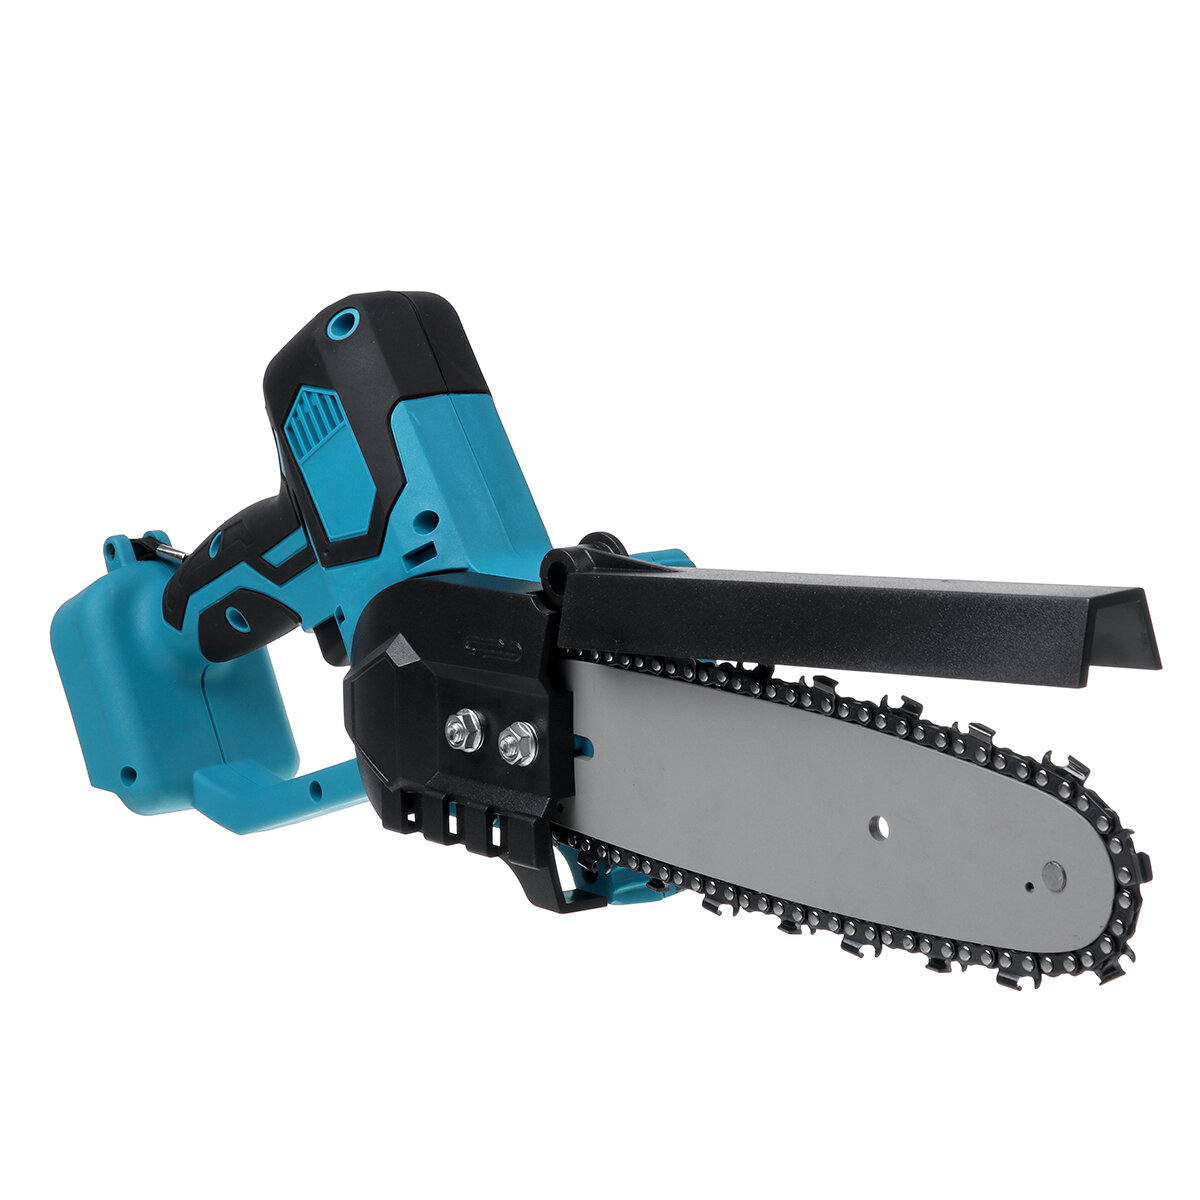 8 Inch Chainsaw Portable Cordless Electric Chain Saws Woodworking Power Tool For...